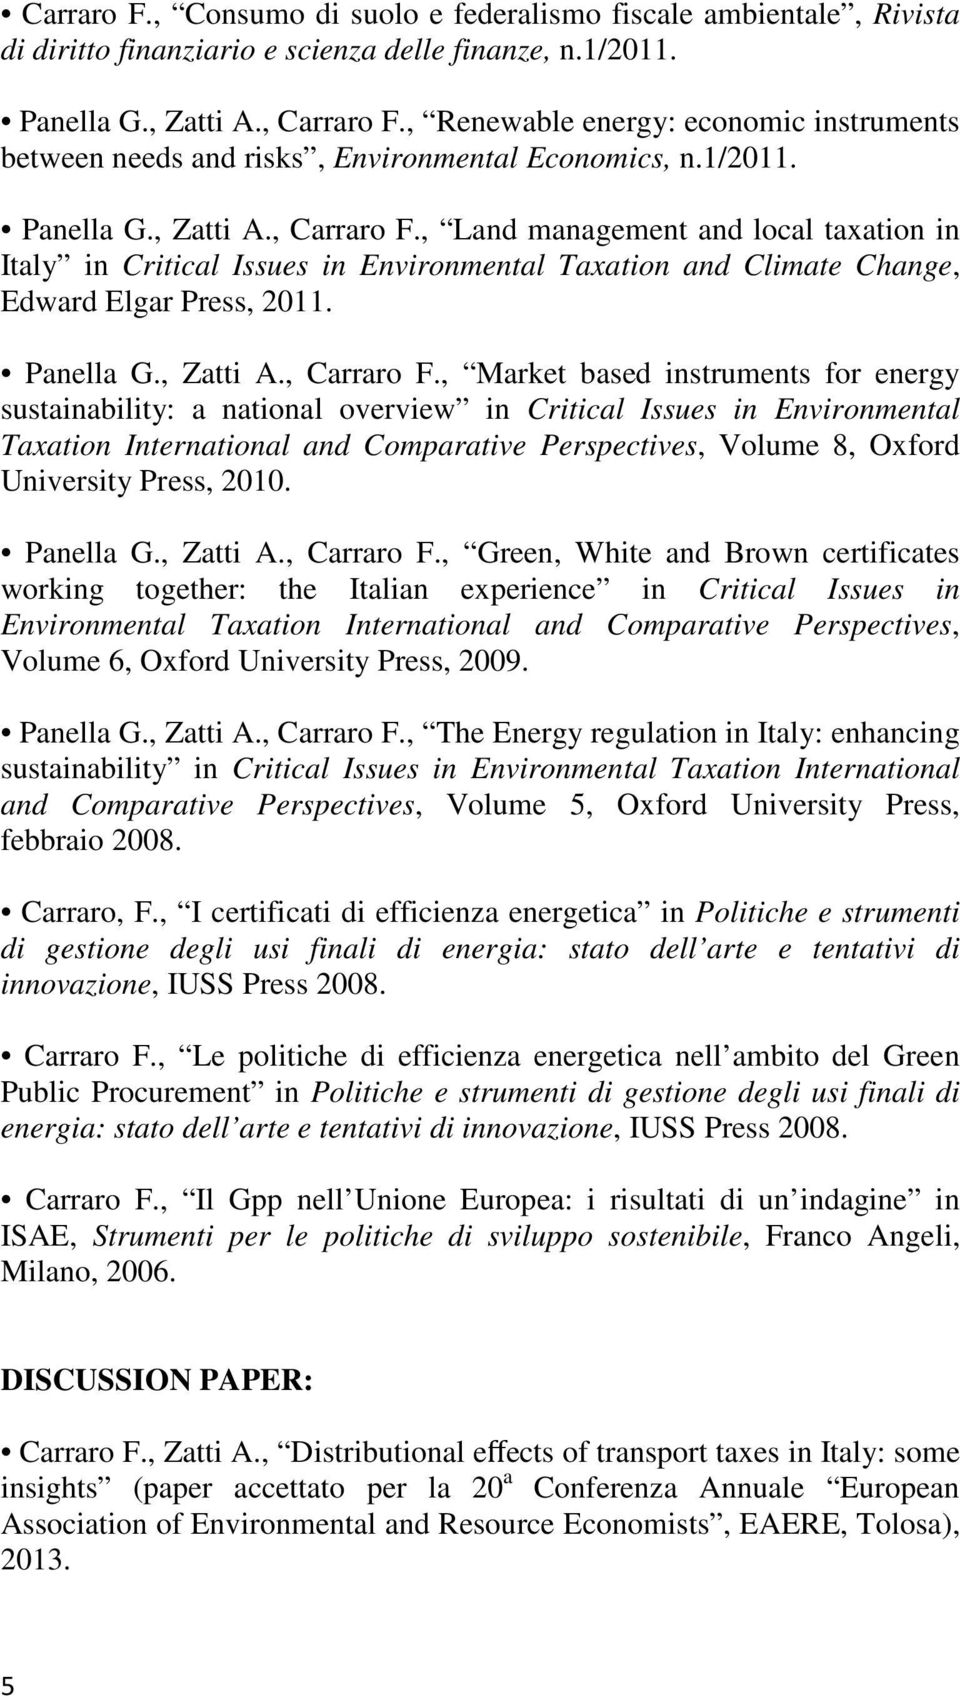 , Land management and local taxation in Italy in Critical Issues in Environmental Taxation and Climate Change, Edward Elgar Press, 2011. Panella G., Zatti A., Carraro F.